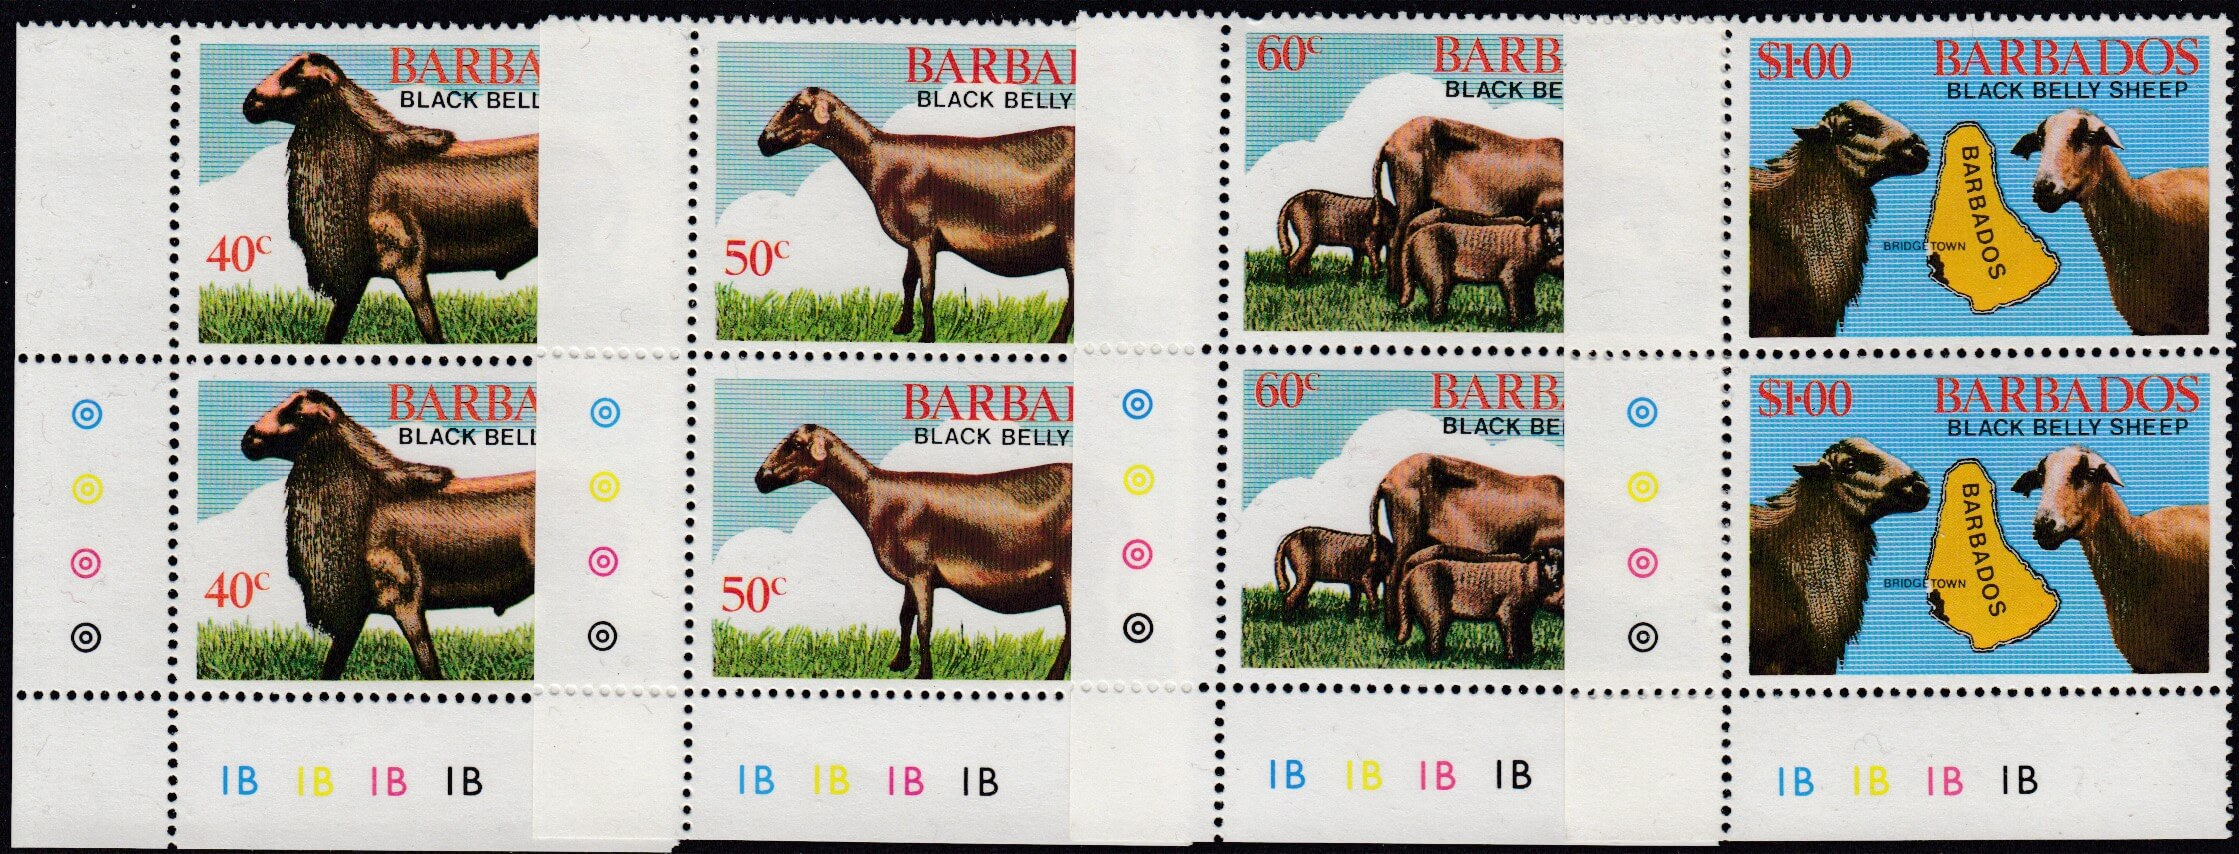 Barbados SG693-696 | Black Belly Sheep Corner Pairs